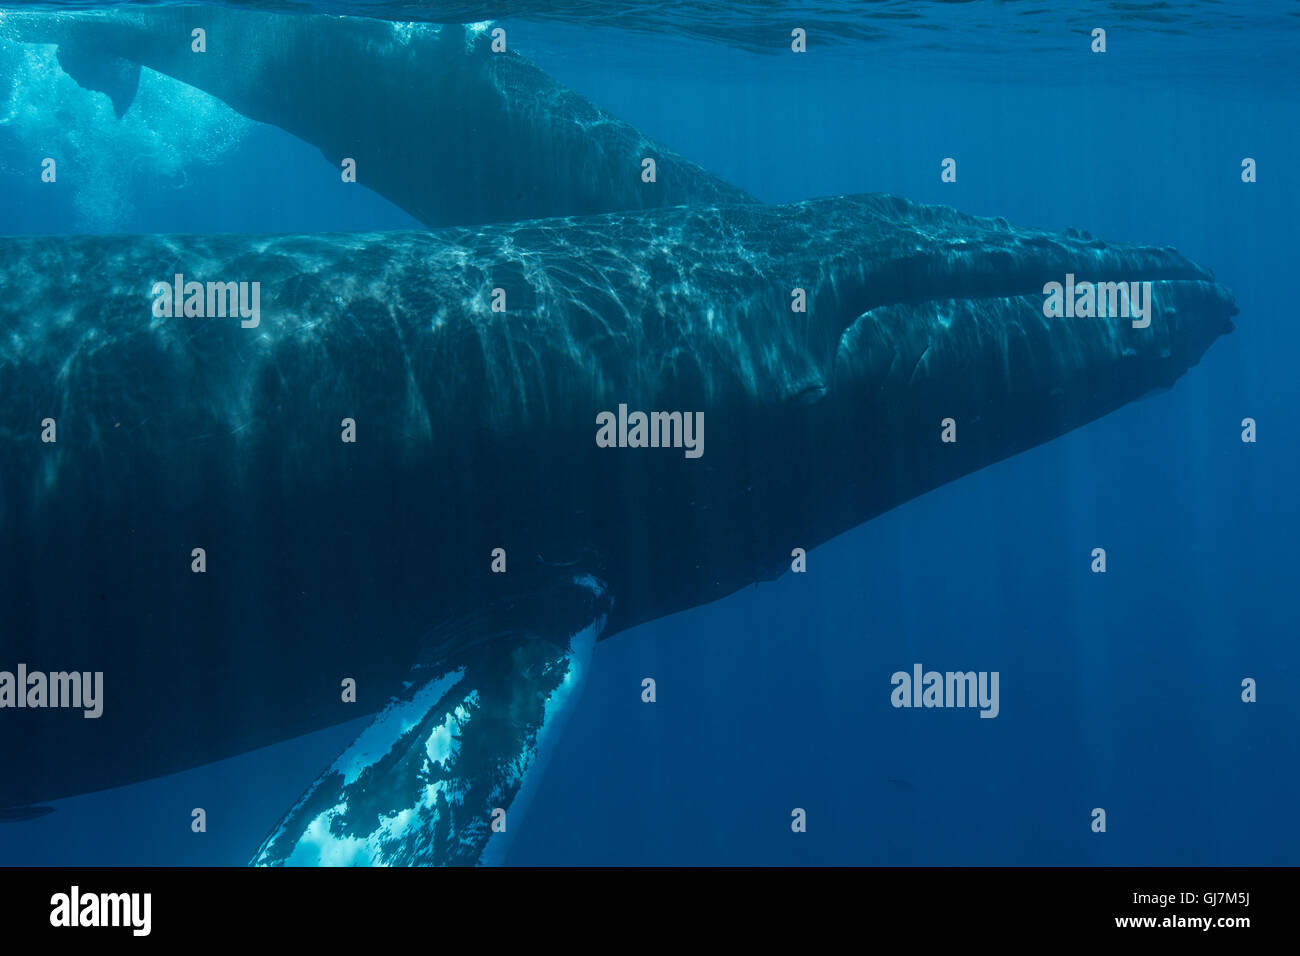 A Humpback whale (Megaptera novaeangliae) slowly surfaces to breathe in the blue waters of Caribbean Sea. - Stock Image